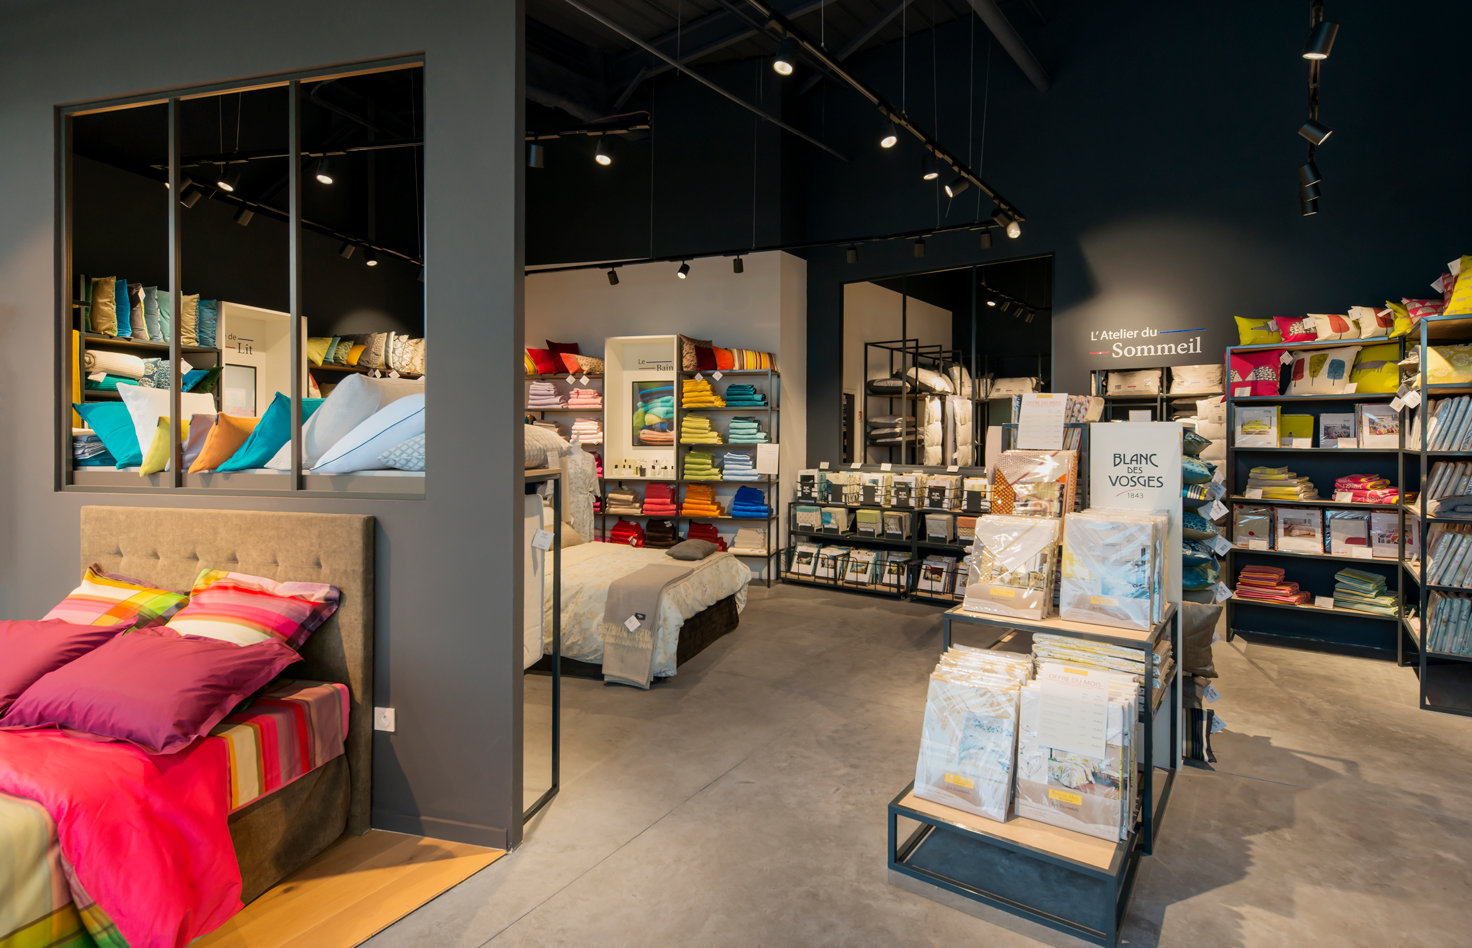 BLANC-DES-VOSGES_Magasin-Outlet-Village_DESIGN-D-ESPACE_archi-inteieur-designer-decorateur-retail_PLANET-DESIGN-PARIS-Eric-Berthes_03.jpg